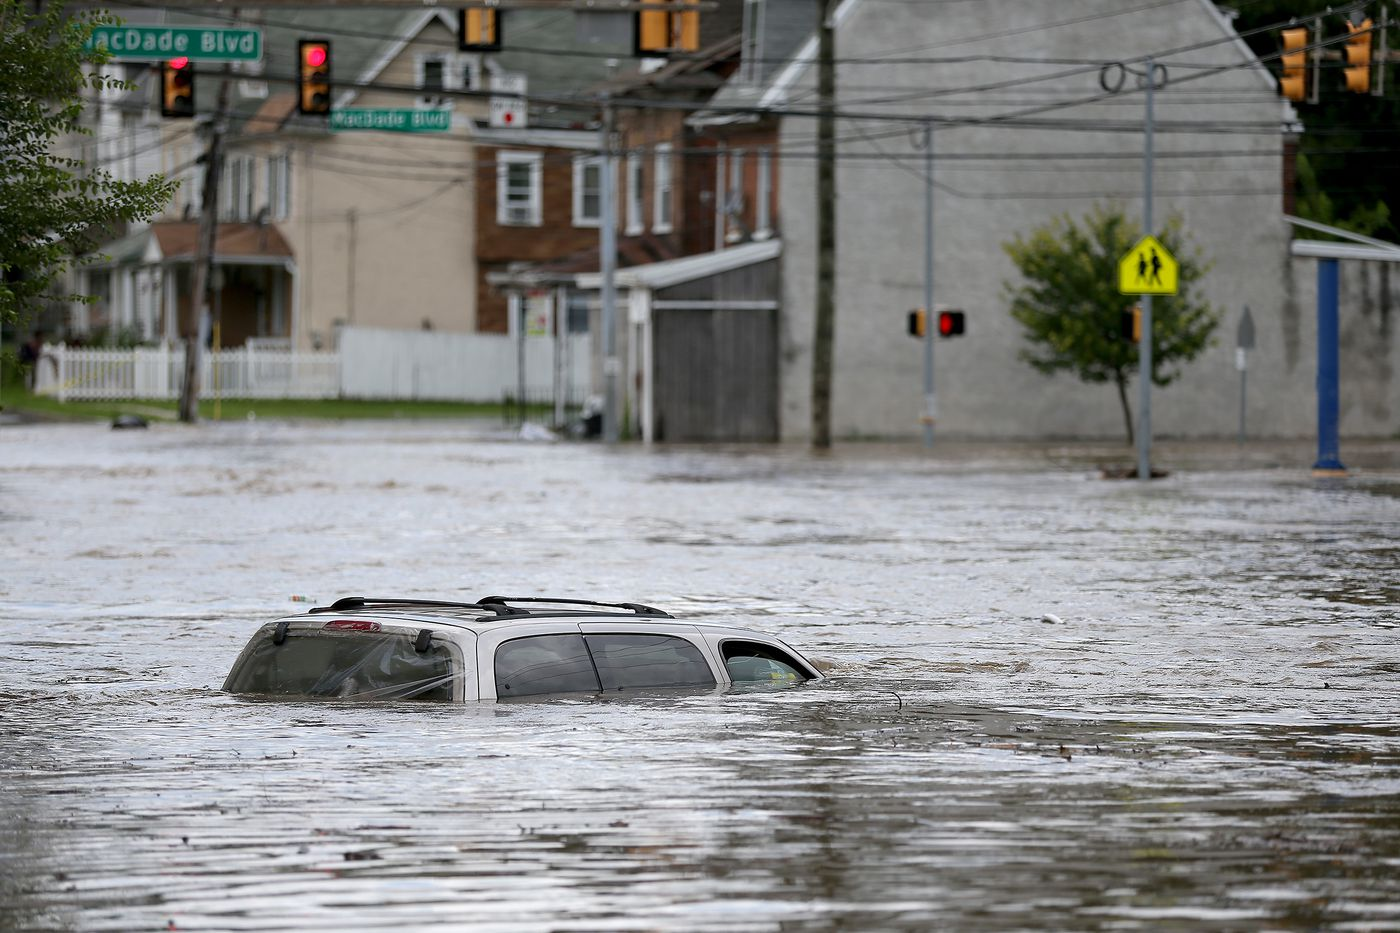 philly area cleans up from floods with eyes on swollen rivers